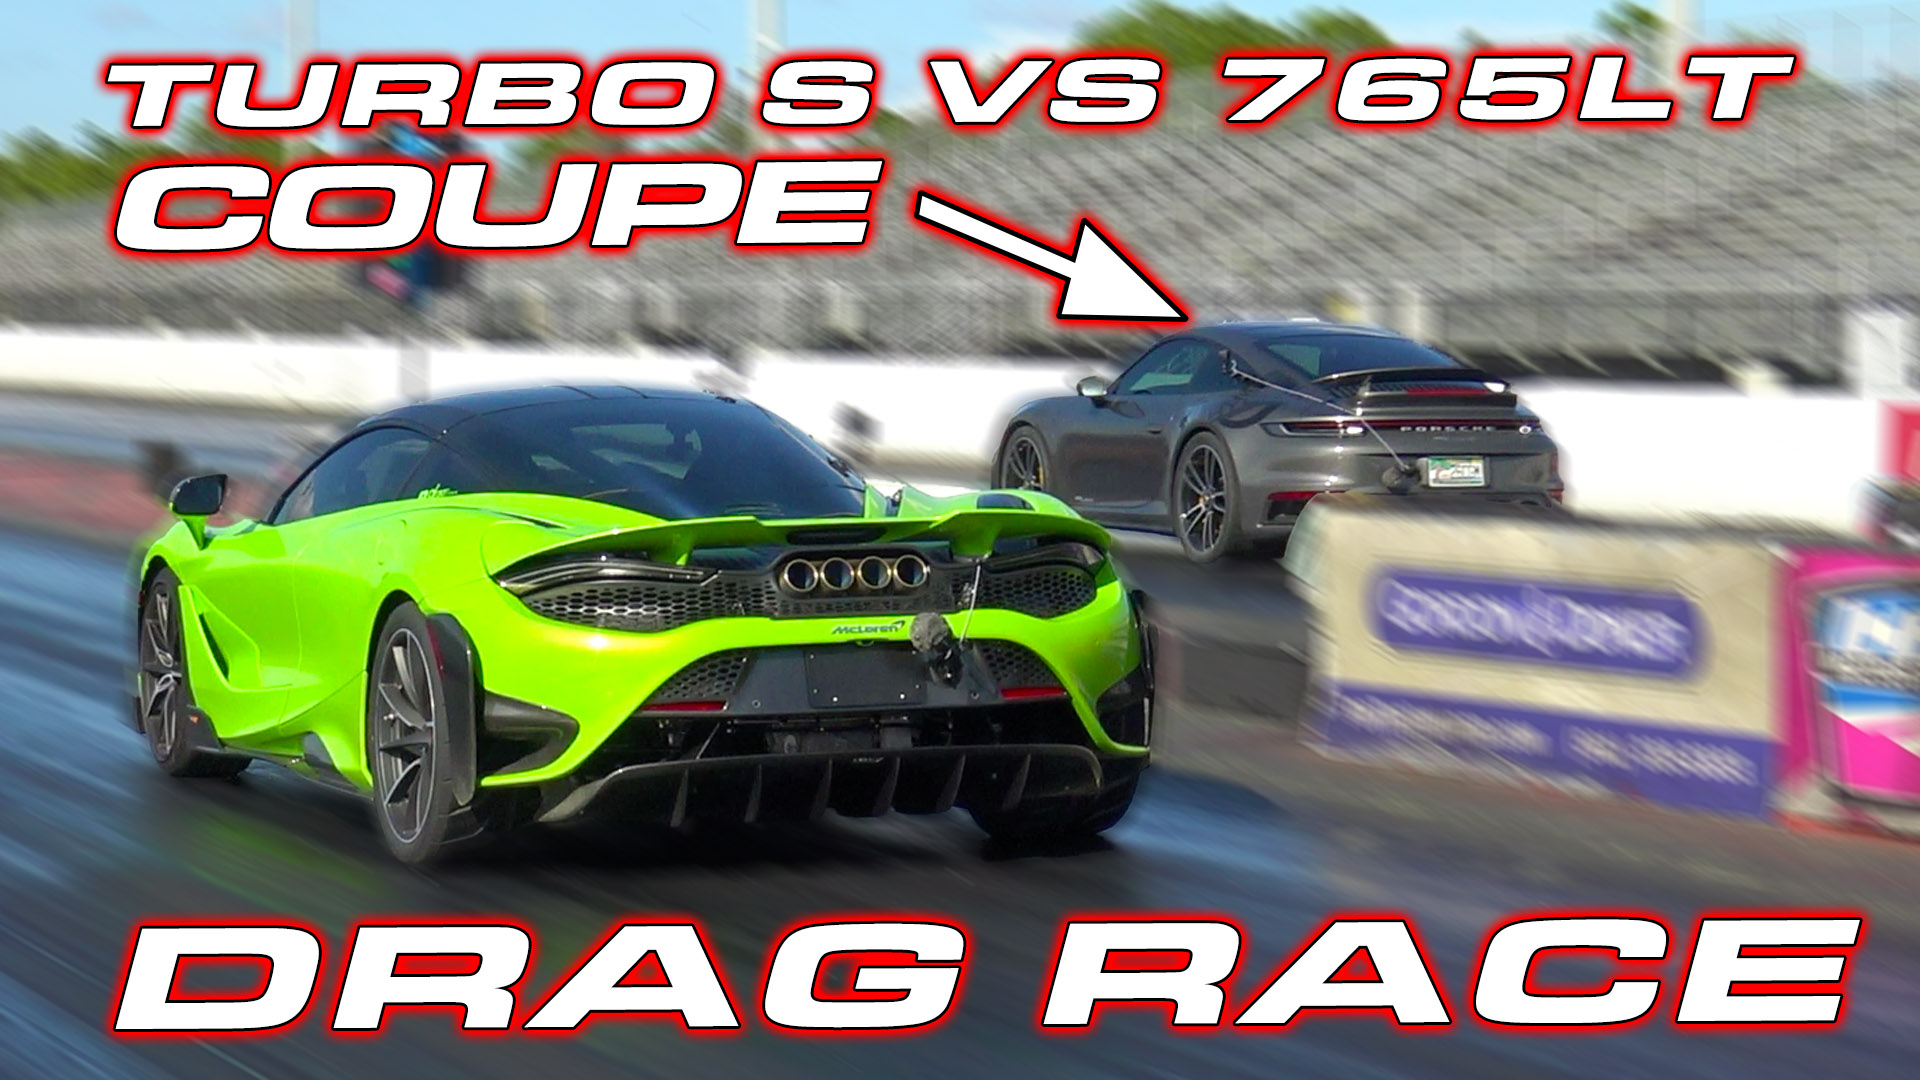 McLaren 765LT vs Porsche 992 Turbo S Drag Race